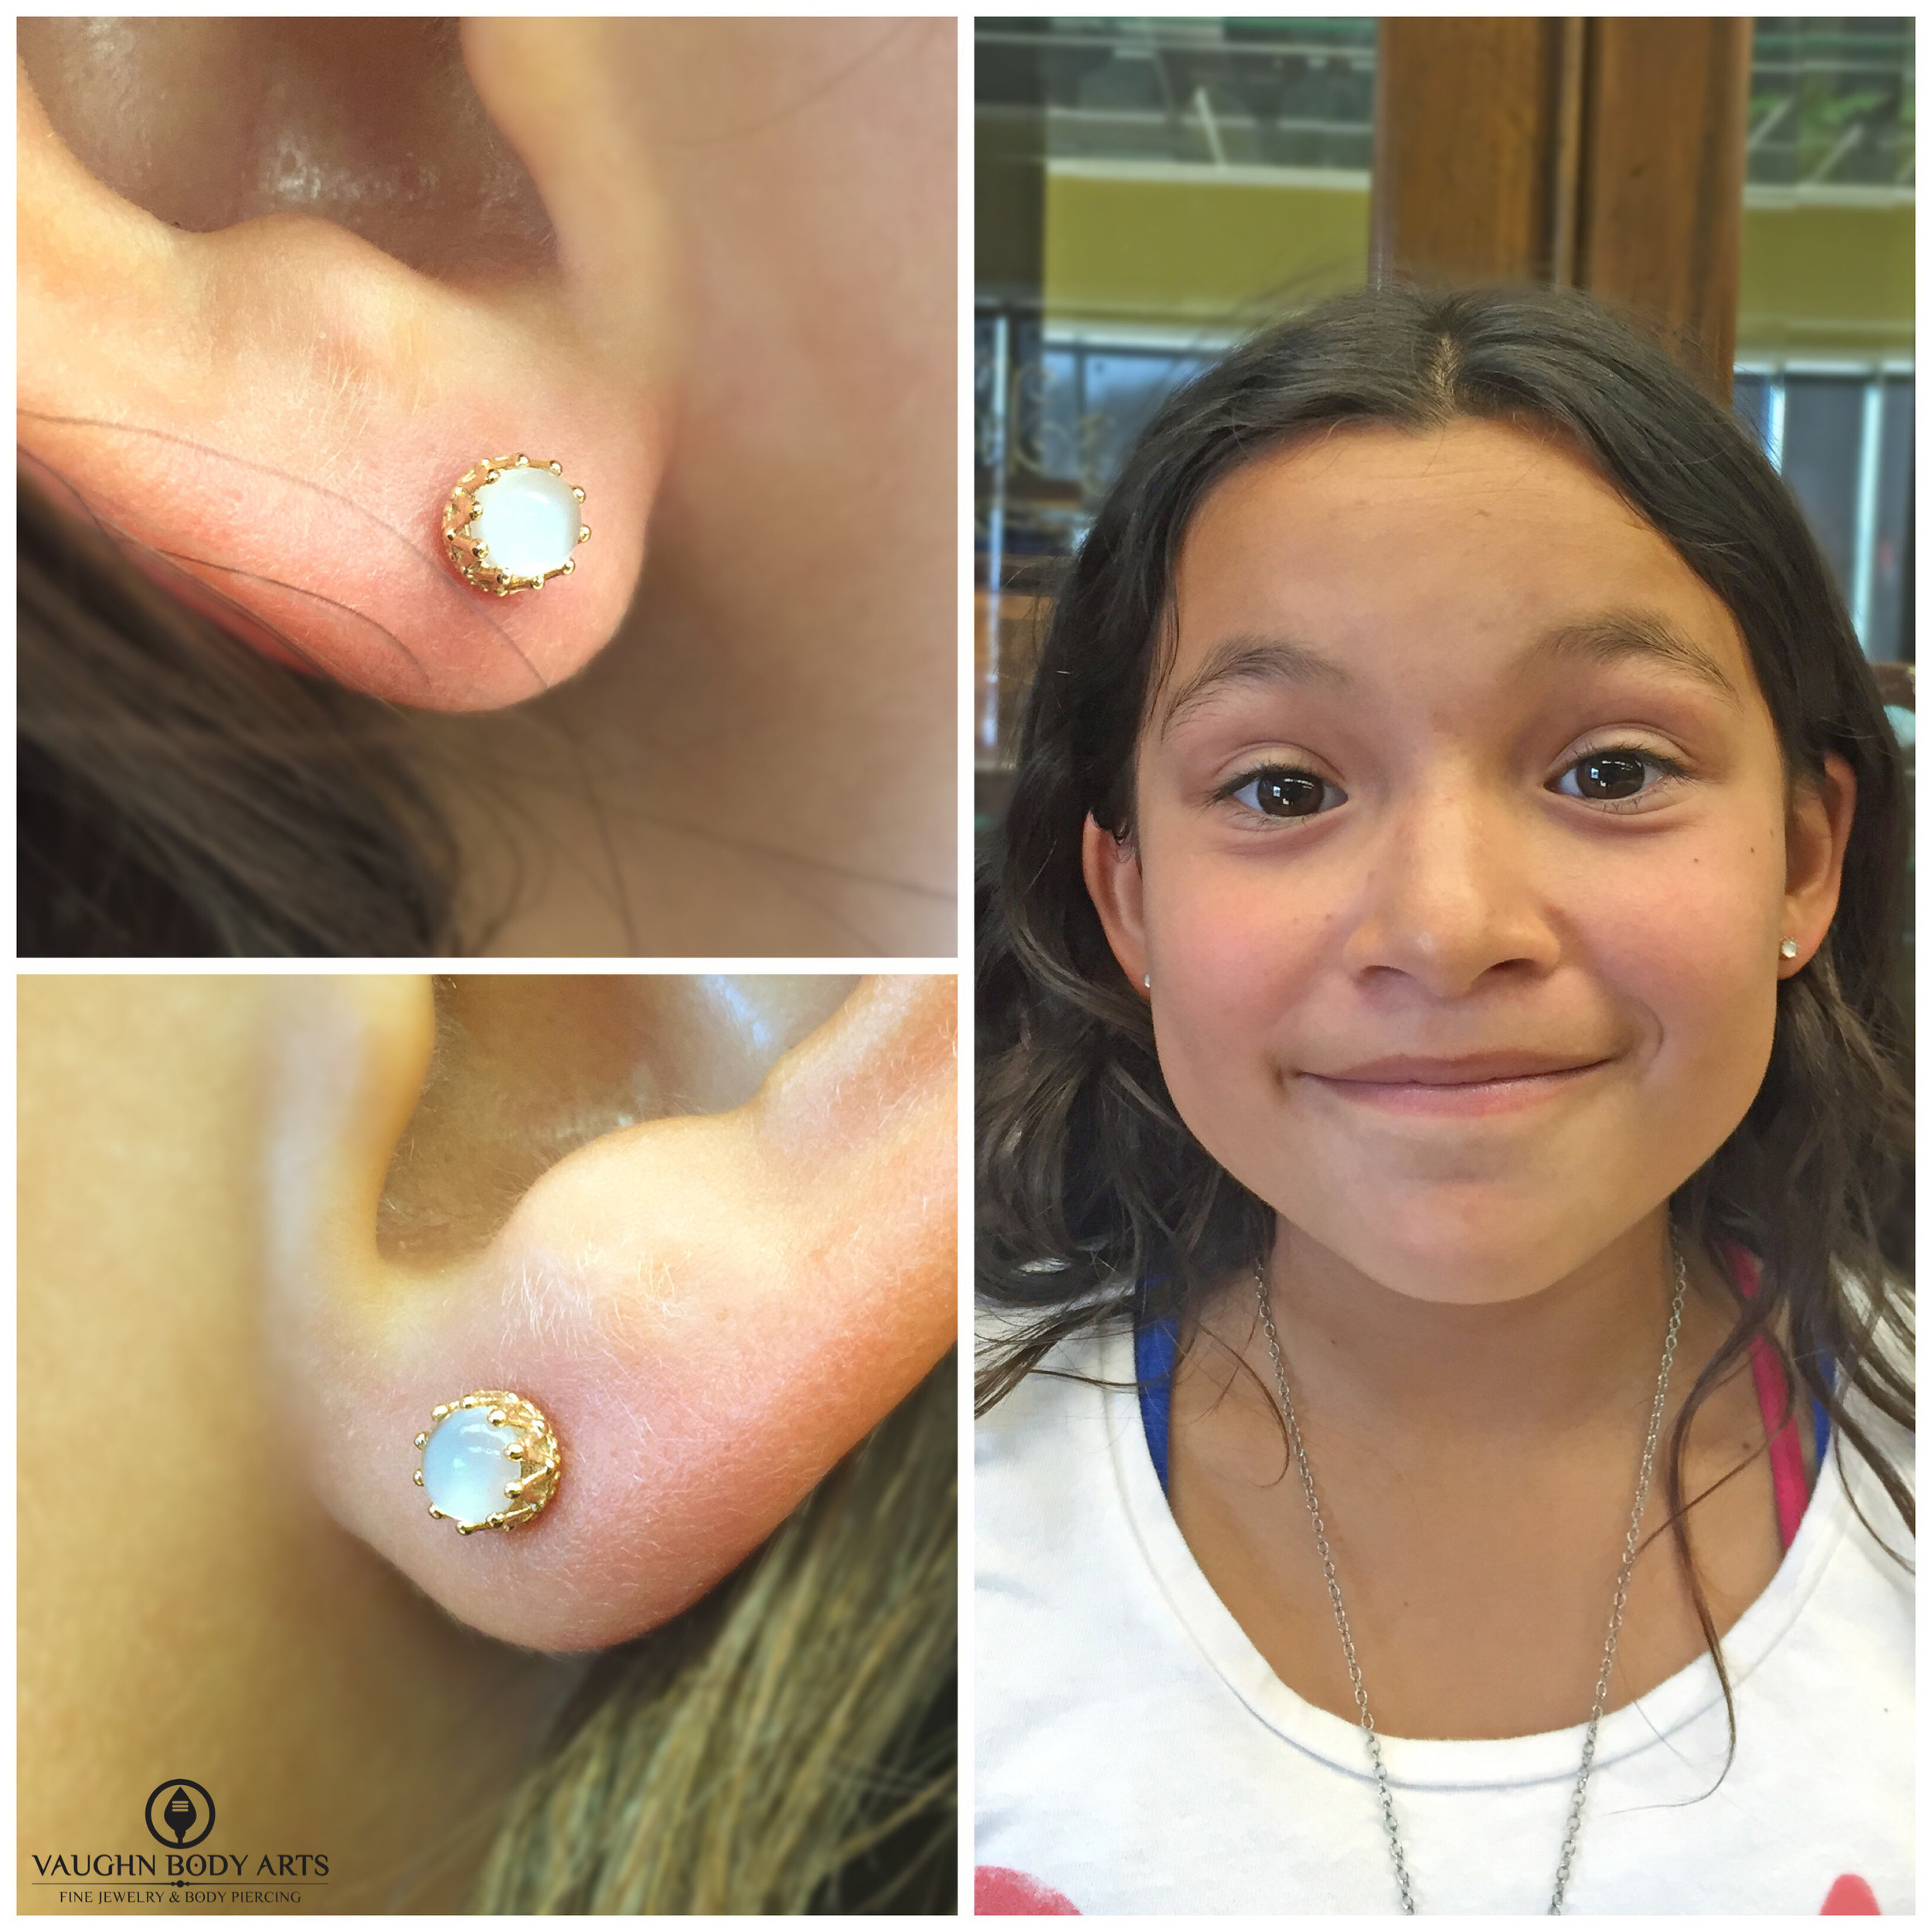 """Earlobe piercings featuring 18k yellow gold """"King"""" ends with genuine moonstone fro Anatometal."""